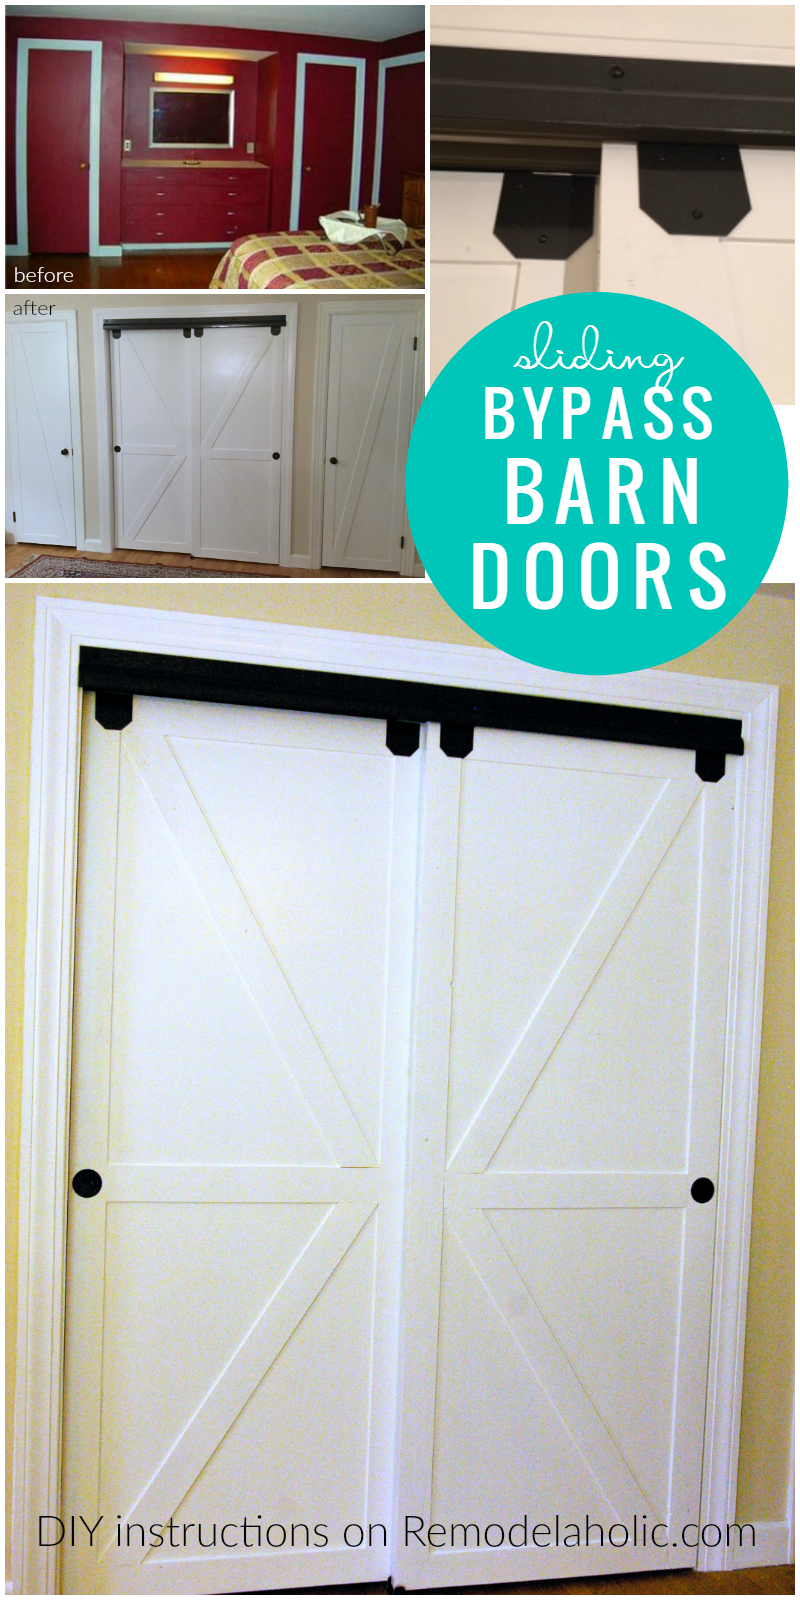 Diy Double Sliding Bypass Barn Doors Remodelaholic Bypass Barn Door Double Closet Doors Barn Door